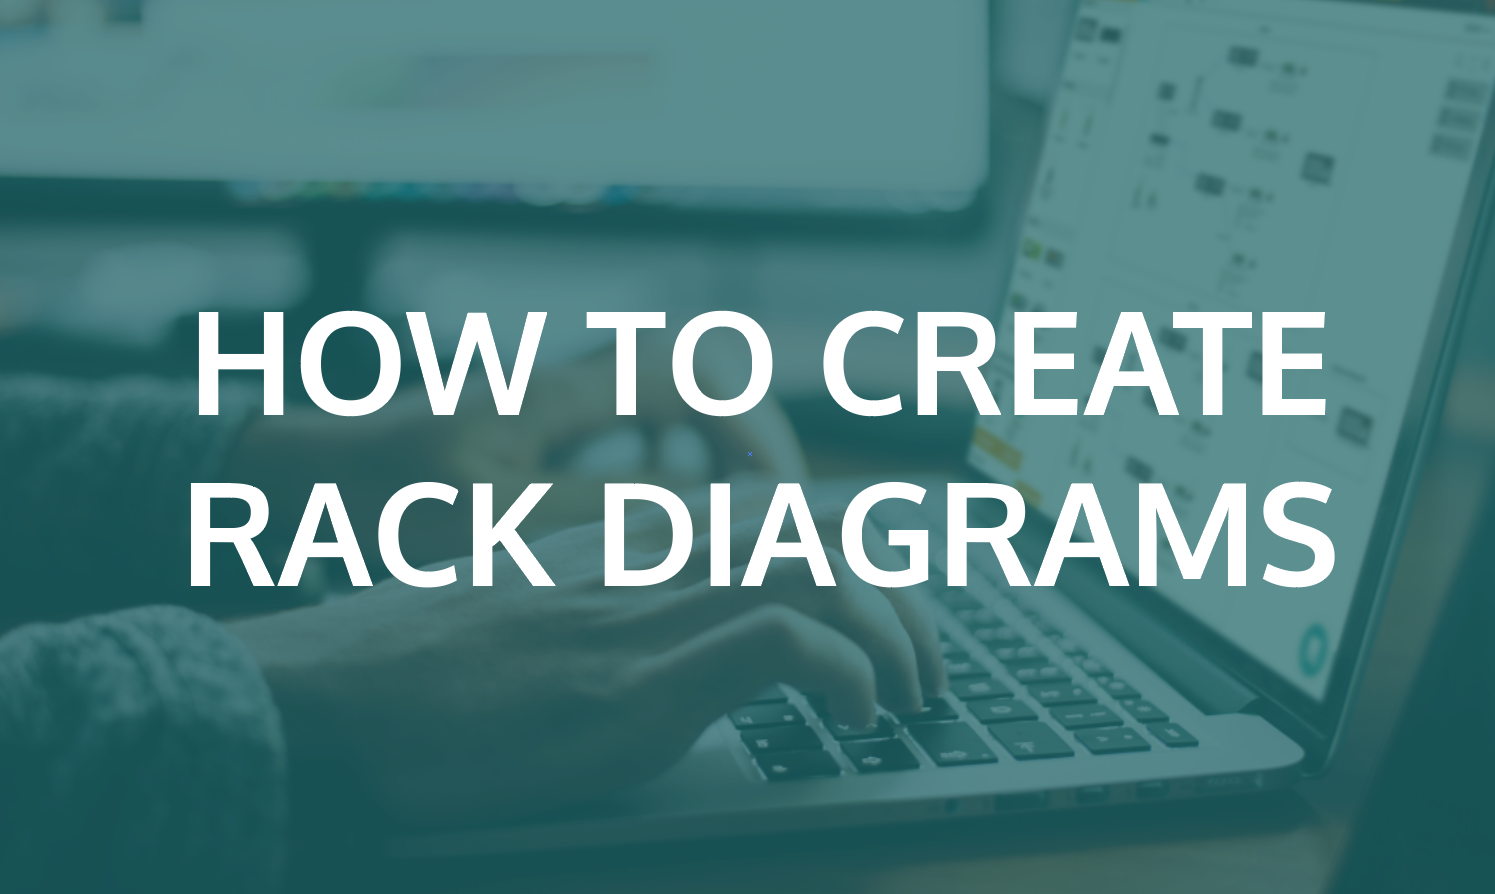 how-to-create-rack-diagrams-1